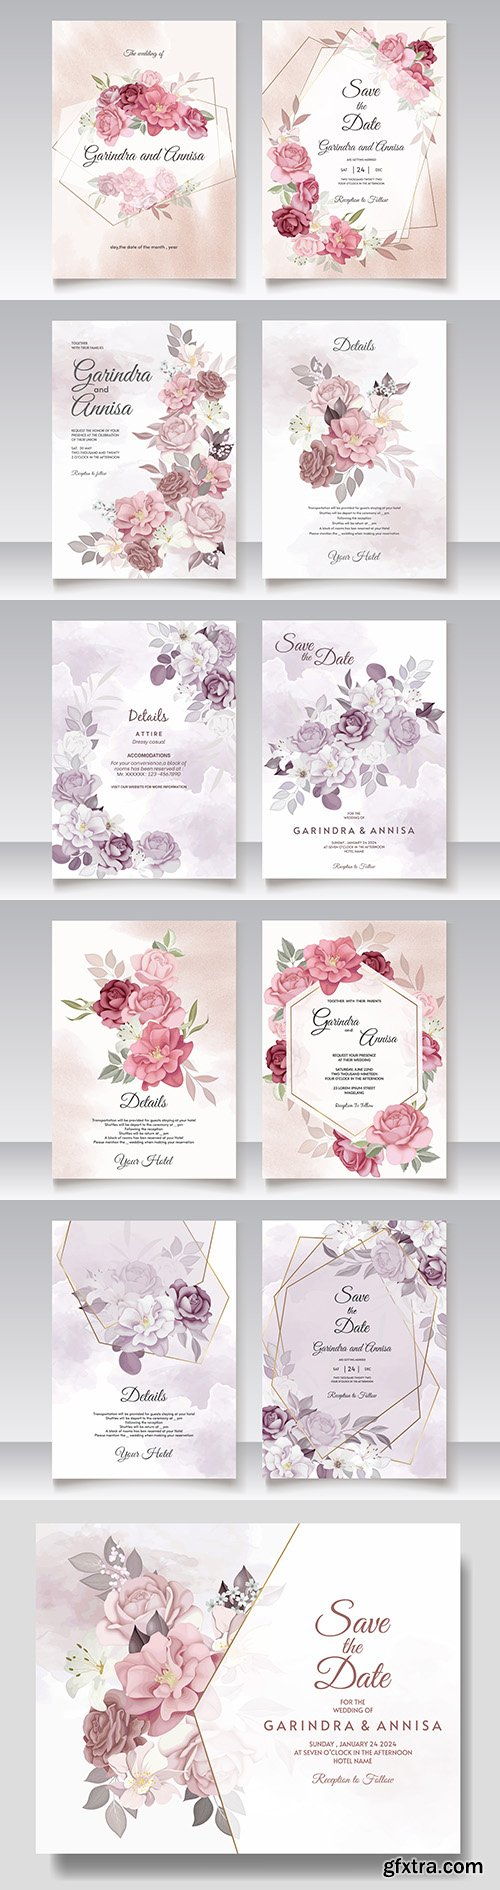 Floral wedding invitation template with elegant flowers and leaves